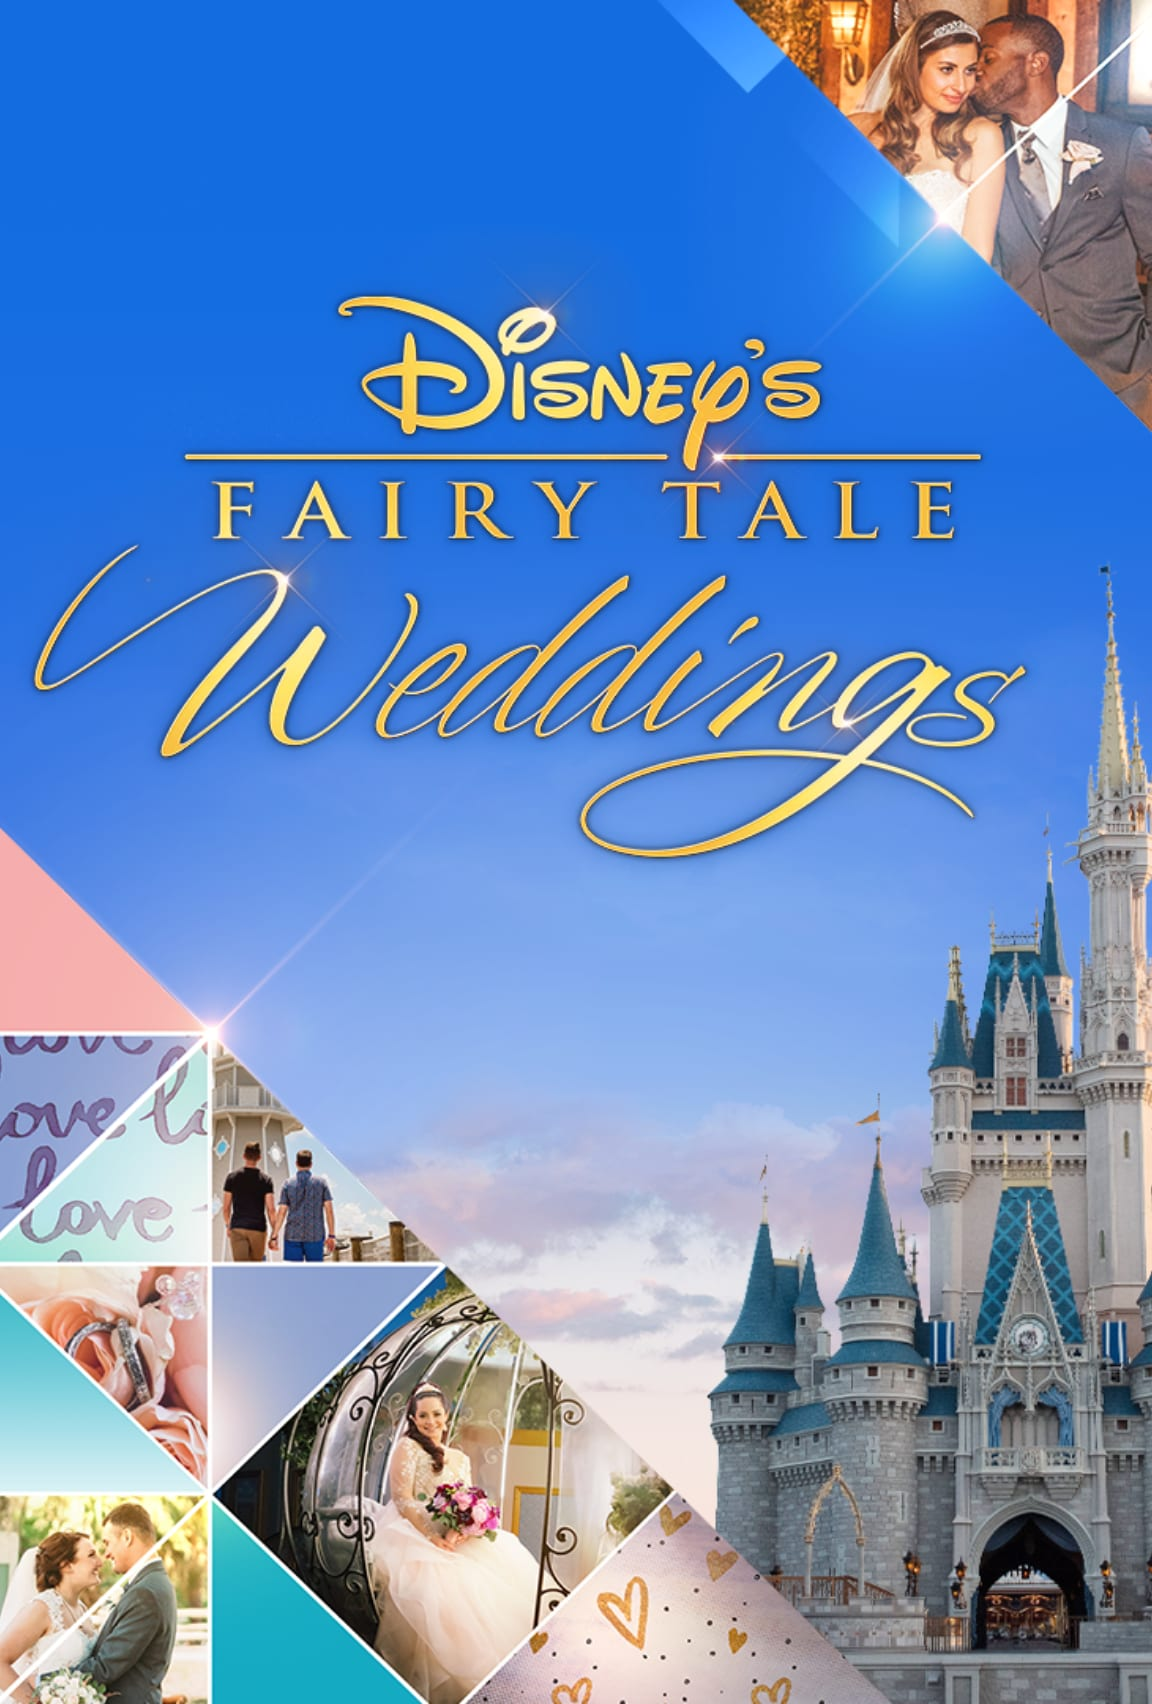 Disney's Fairy Tale Weddings (2017)